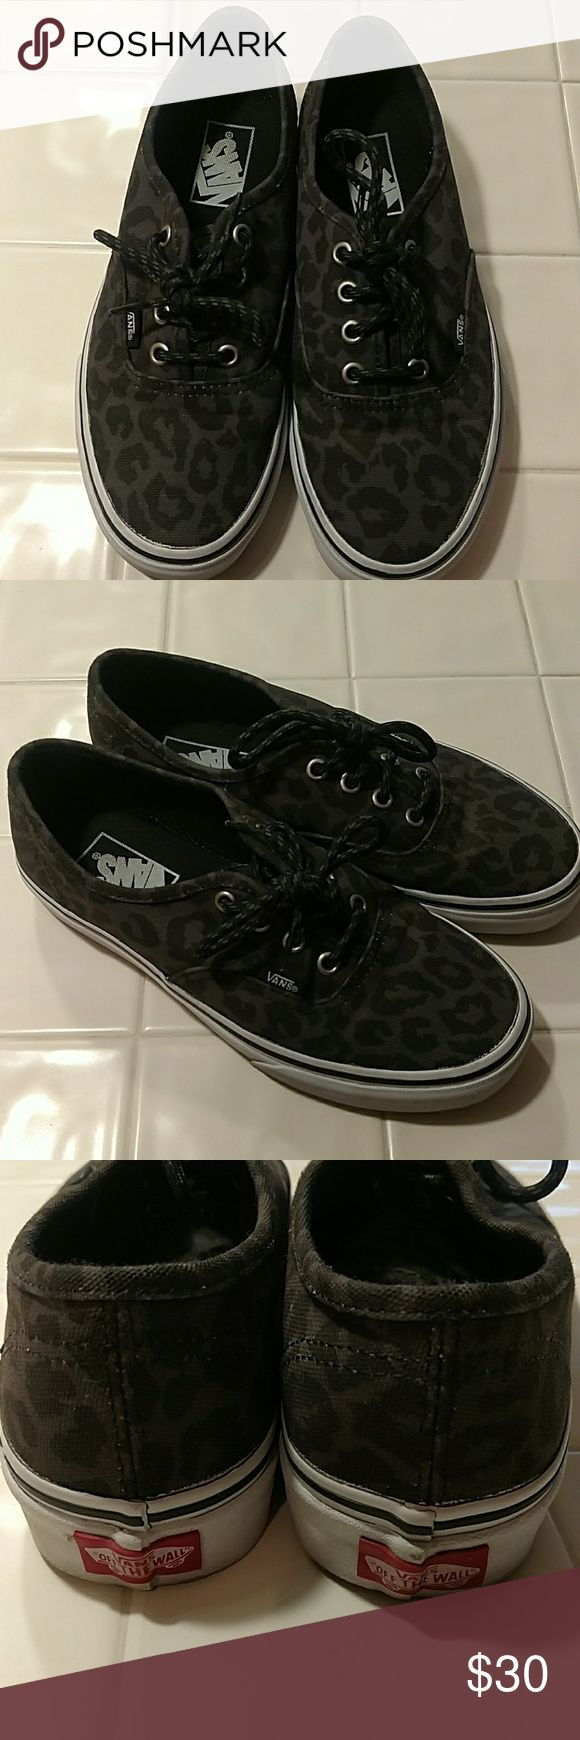 Vans Animal Print Shoes Great condition, worn twice. US women's 7.5, men's 6. Black & gray animal/leopard/cheetah print. Smoke-free home. Vans Shoes Sneakers